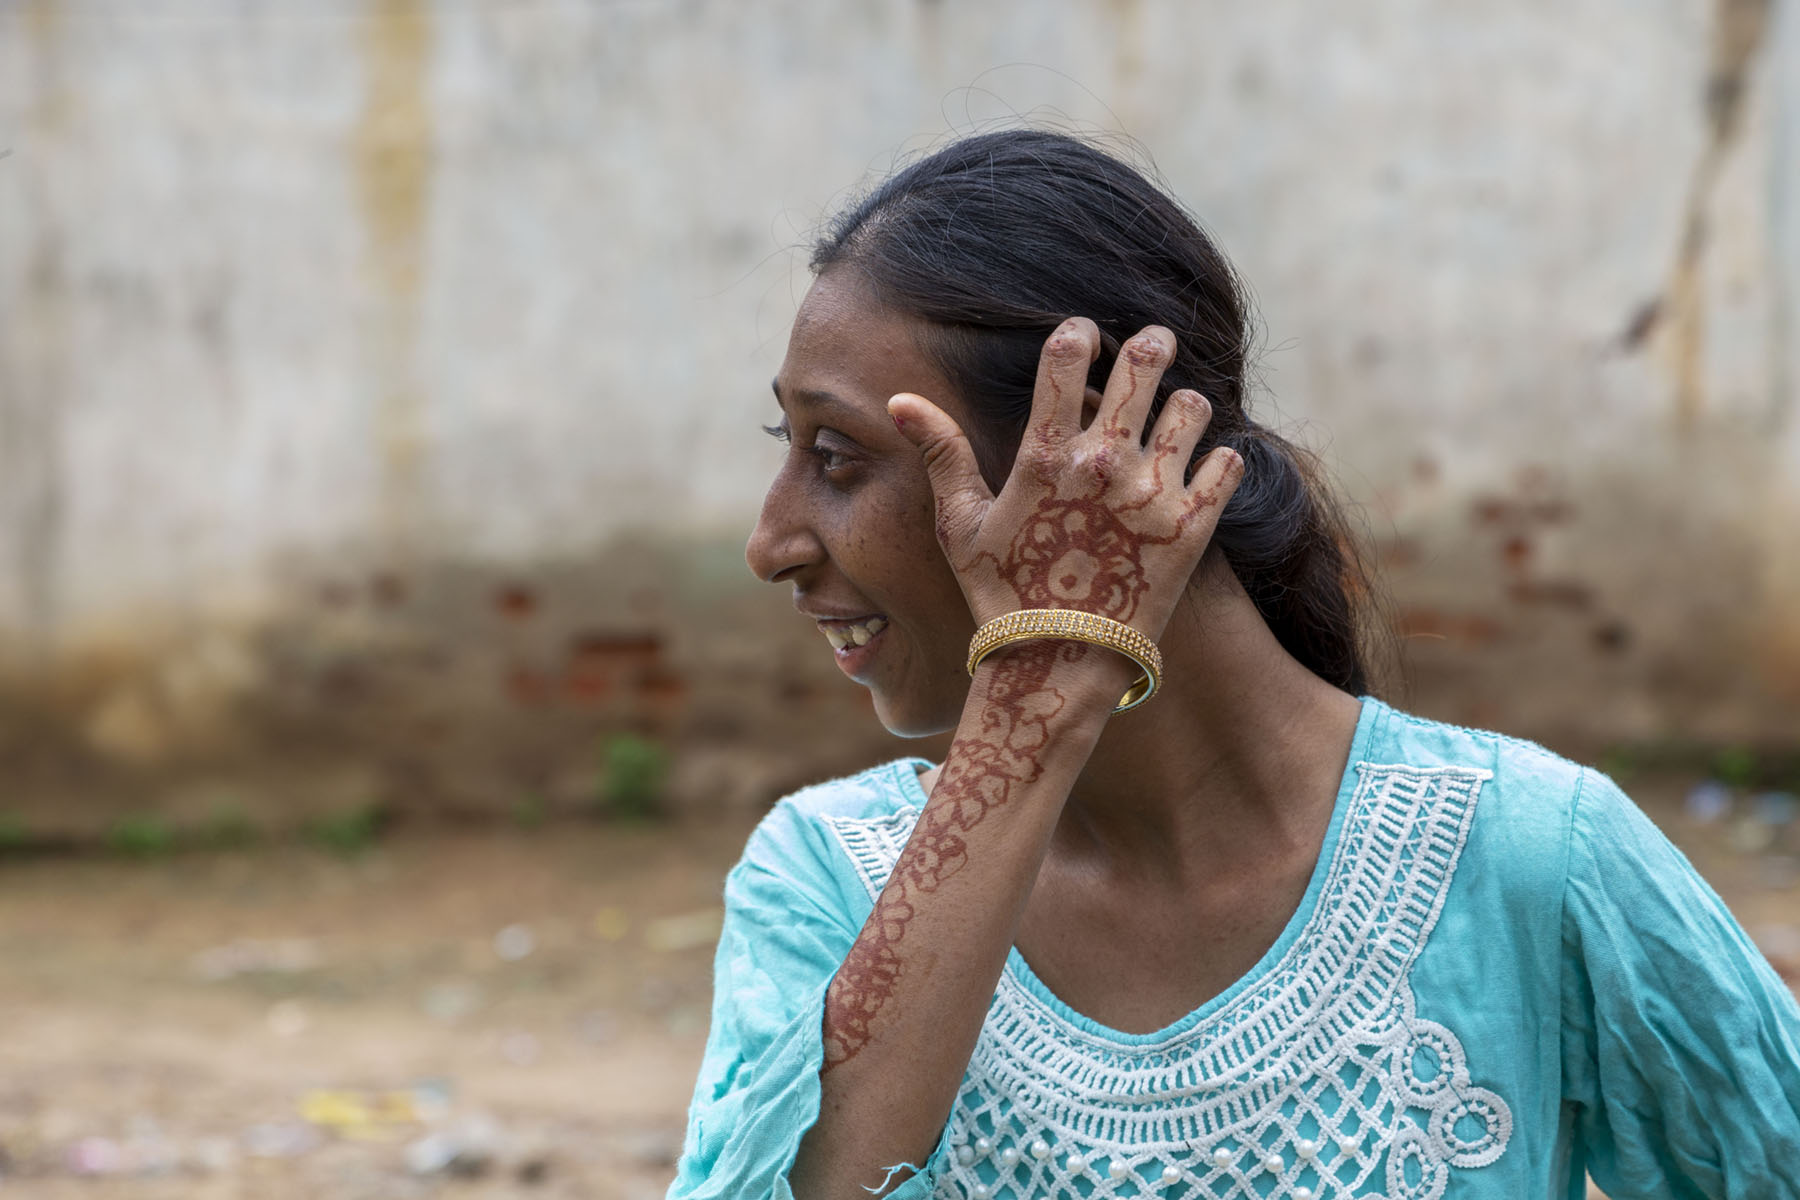 Close-up of Roji Nisha (21) with black hair tied back and wearing a sky blue top with white embroidery on the front. She has turned her head to her right and is smiling. She has raised her right hand up to touch the left side of her head. A decorative mehendi pattern runs all along the back of her arm, hand and fingers. A broad, gold-coloured bangle adorns her wrist.